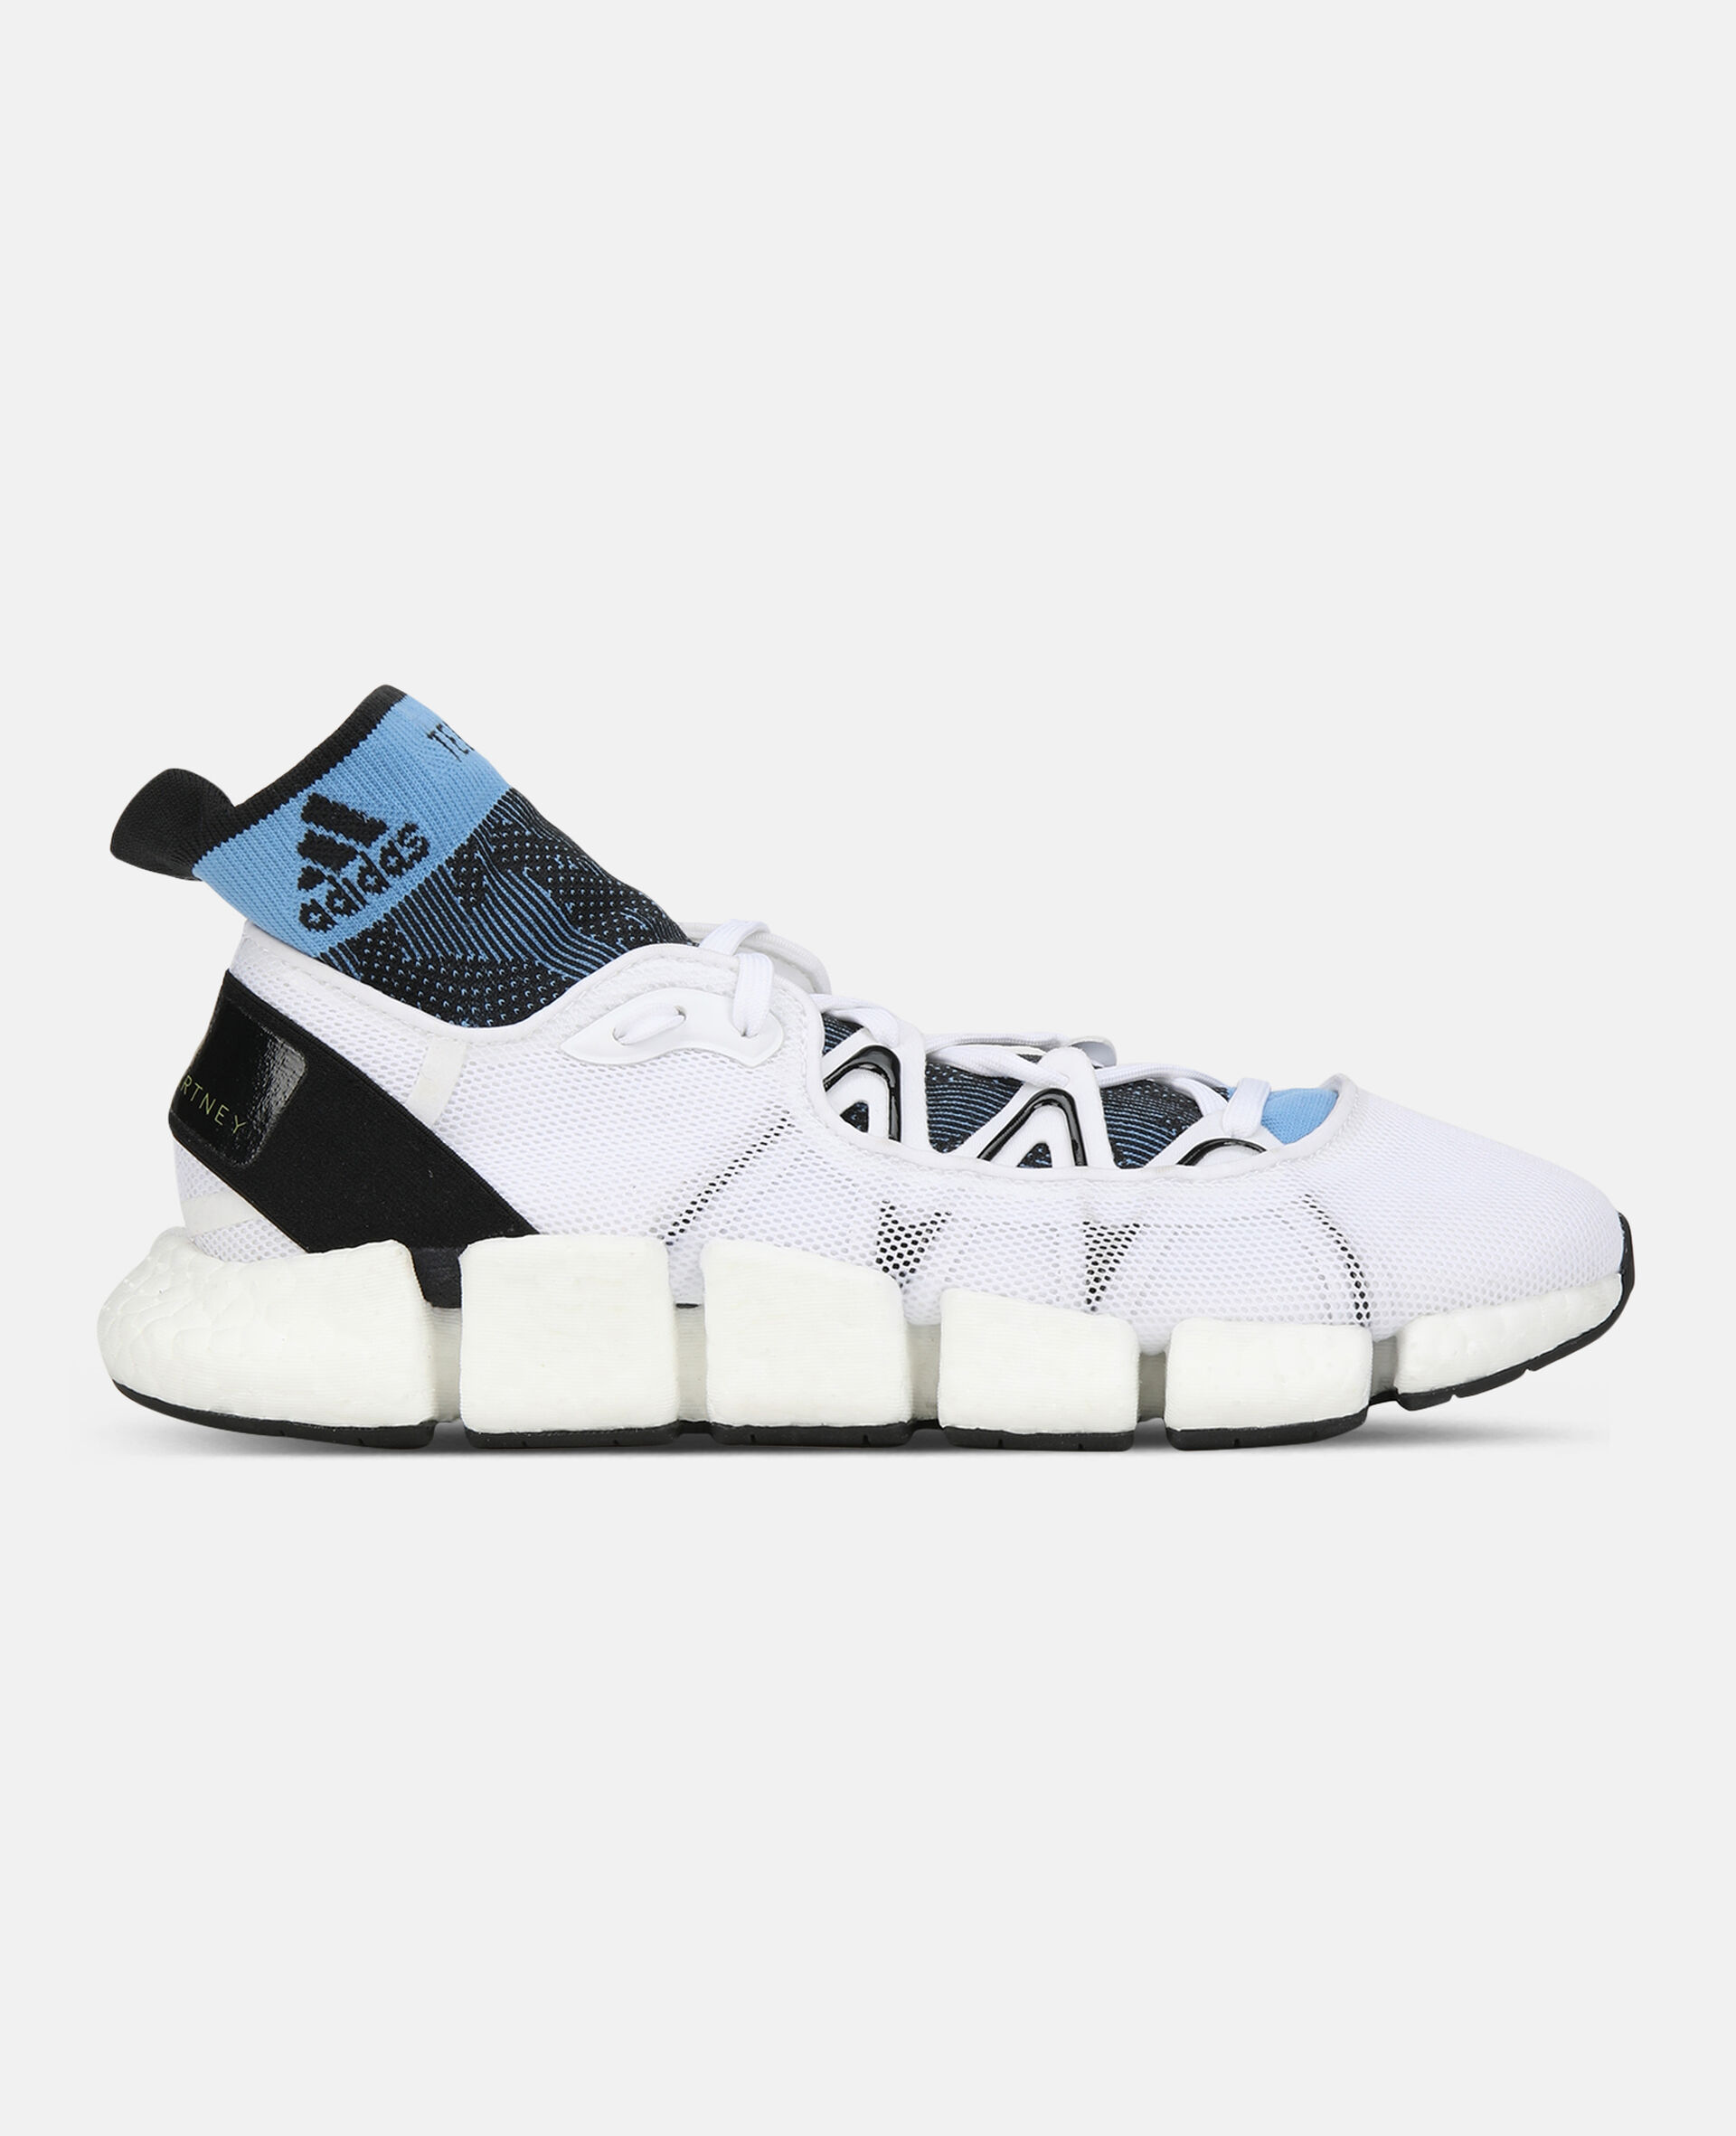 Climacool Vento 3-in-1 Sneakers -White-large image number 0